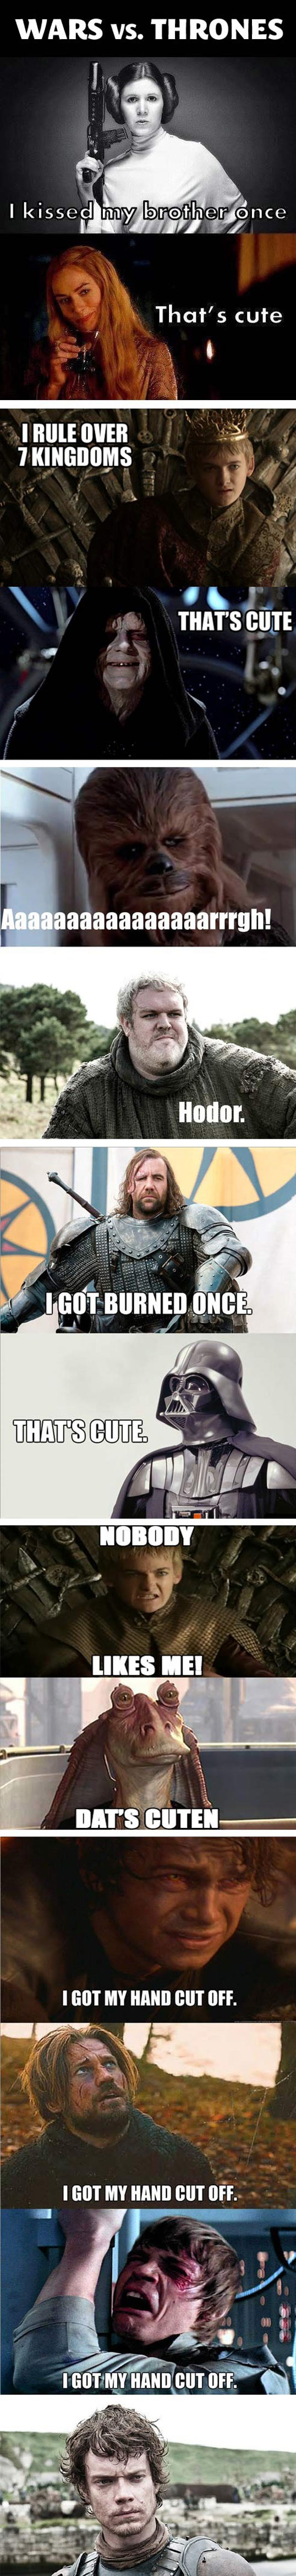 funny-Star-Wars-characters-Game-Thrones